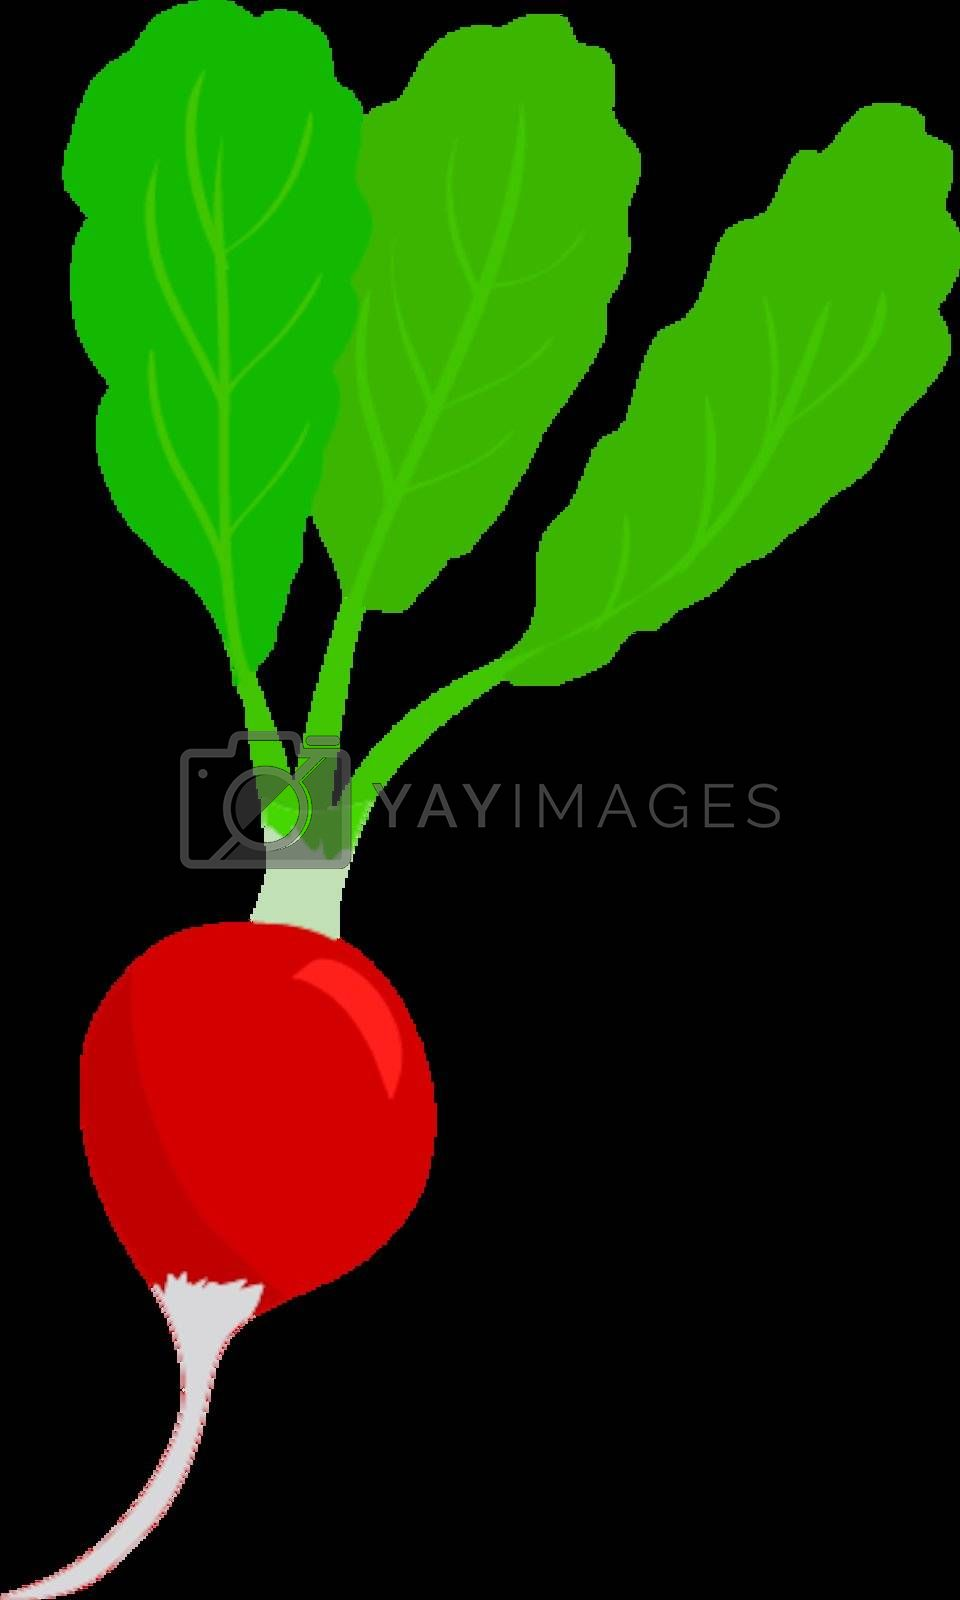 Royalty free image of red radish by Perysty